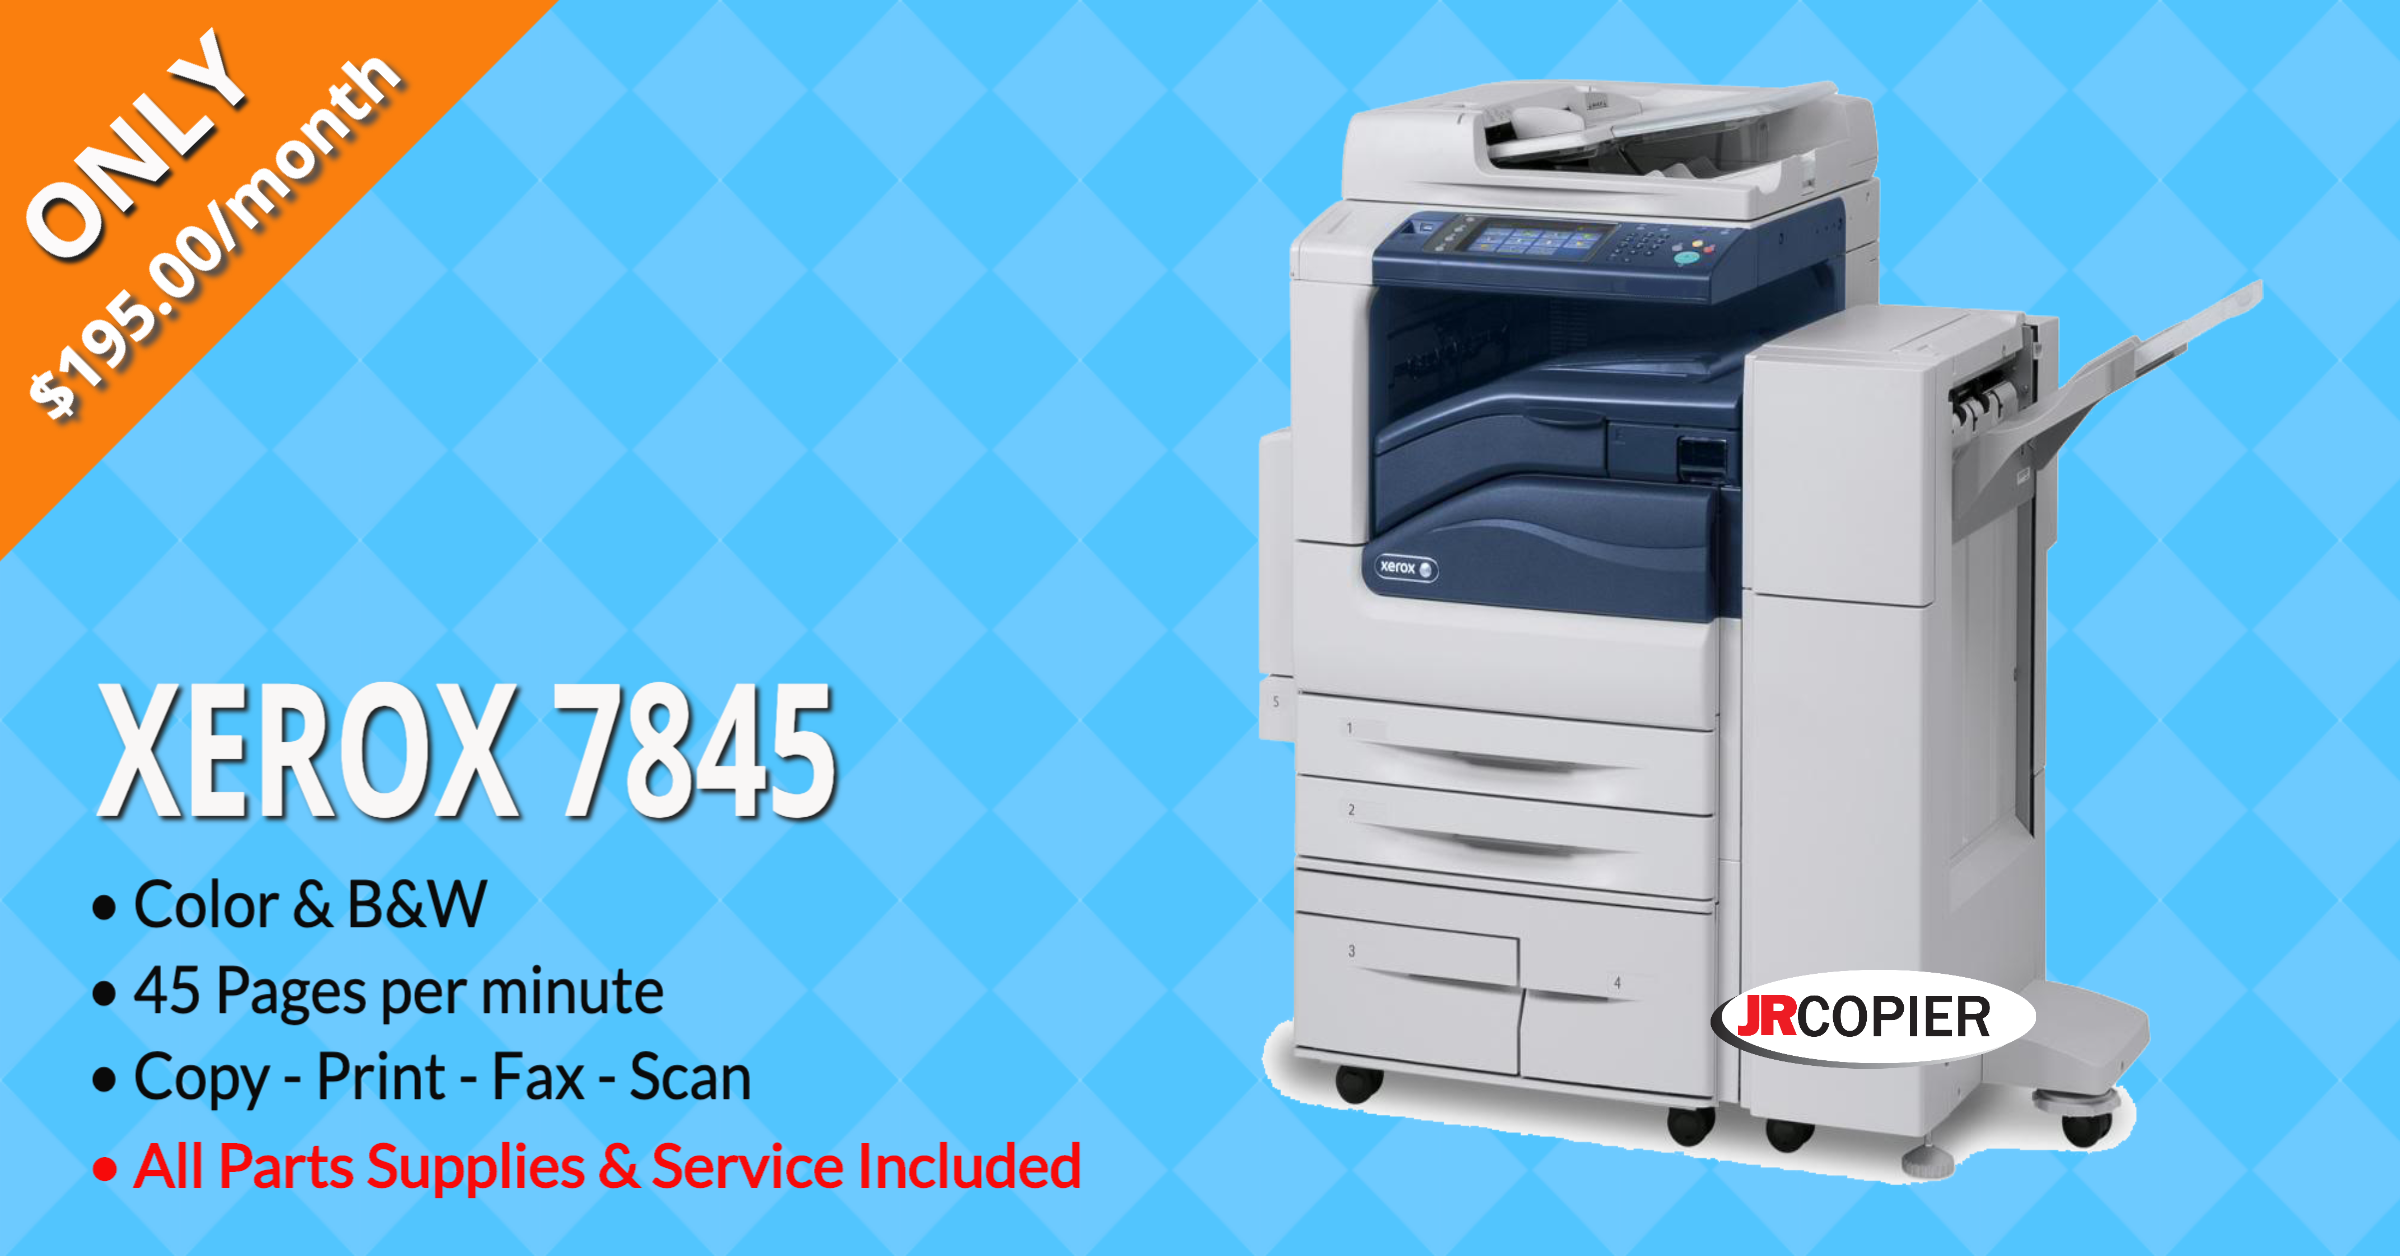 Copy Machine Companies 86301, 86302, 86303, 86304, 86305, 86313, 86314, 86323